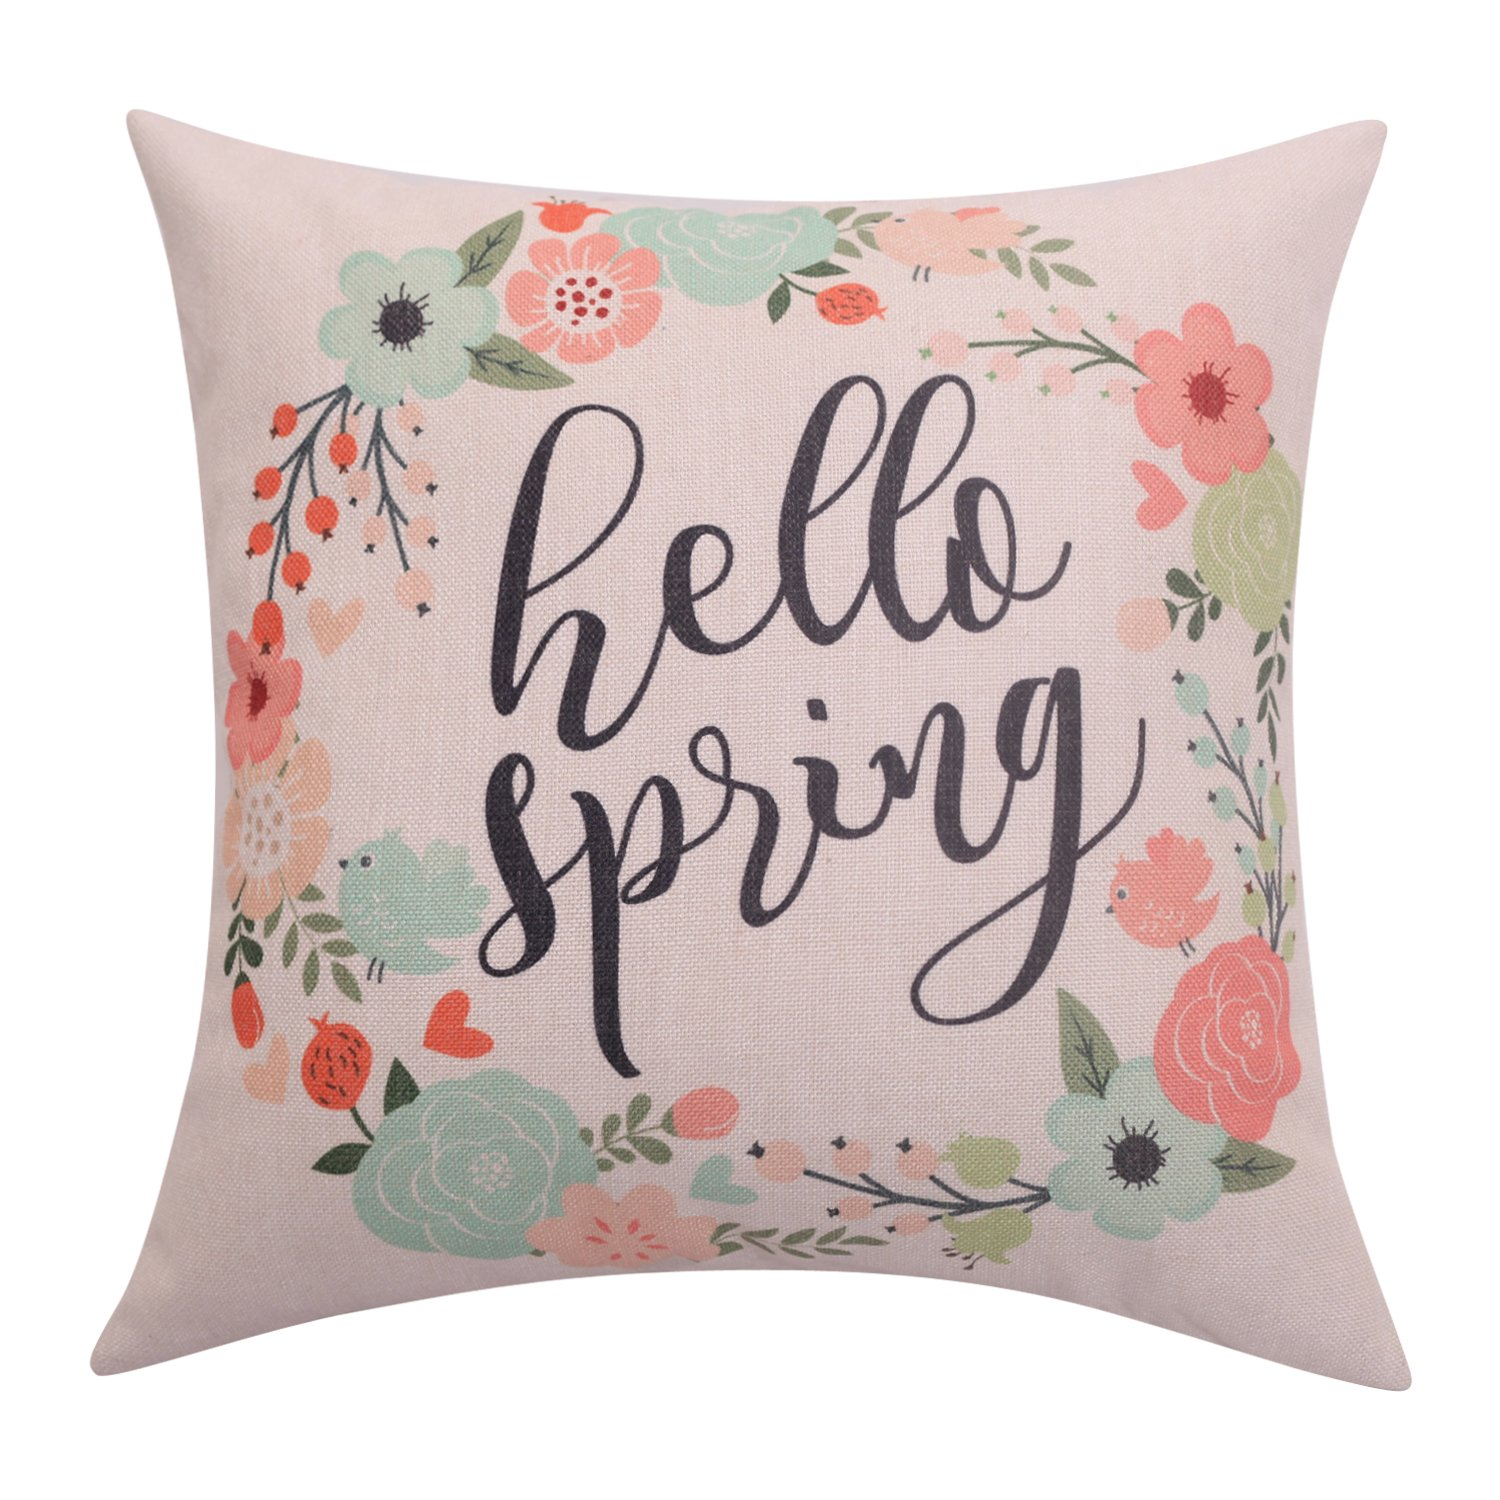 Hello Spring watercolor pillow cover with flowers affilaite link